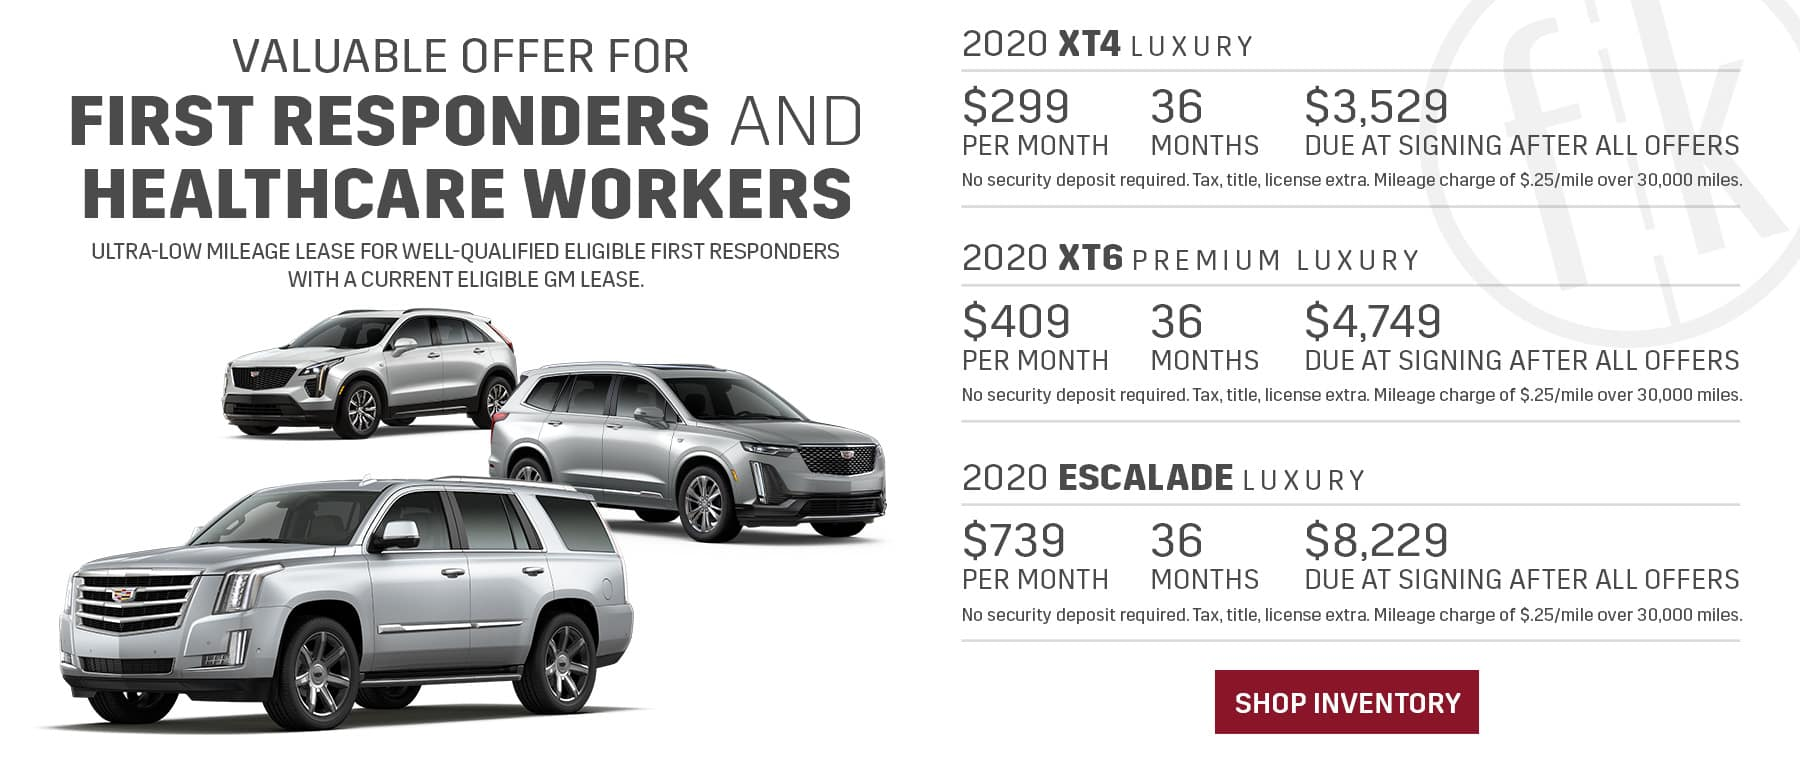 Supplier Pricing for First Responders – XT4, XT6 & Escalade